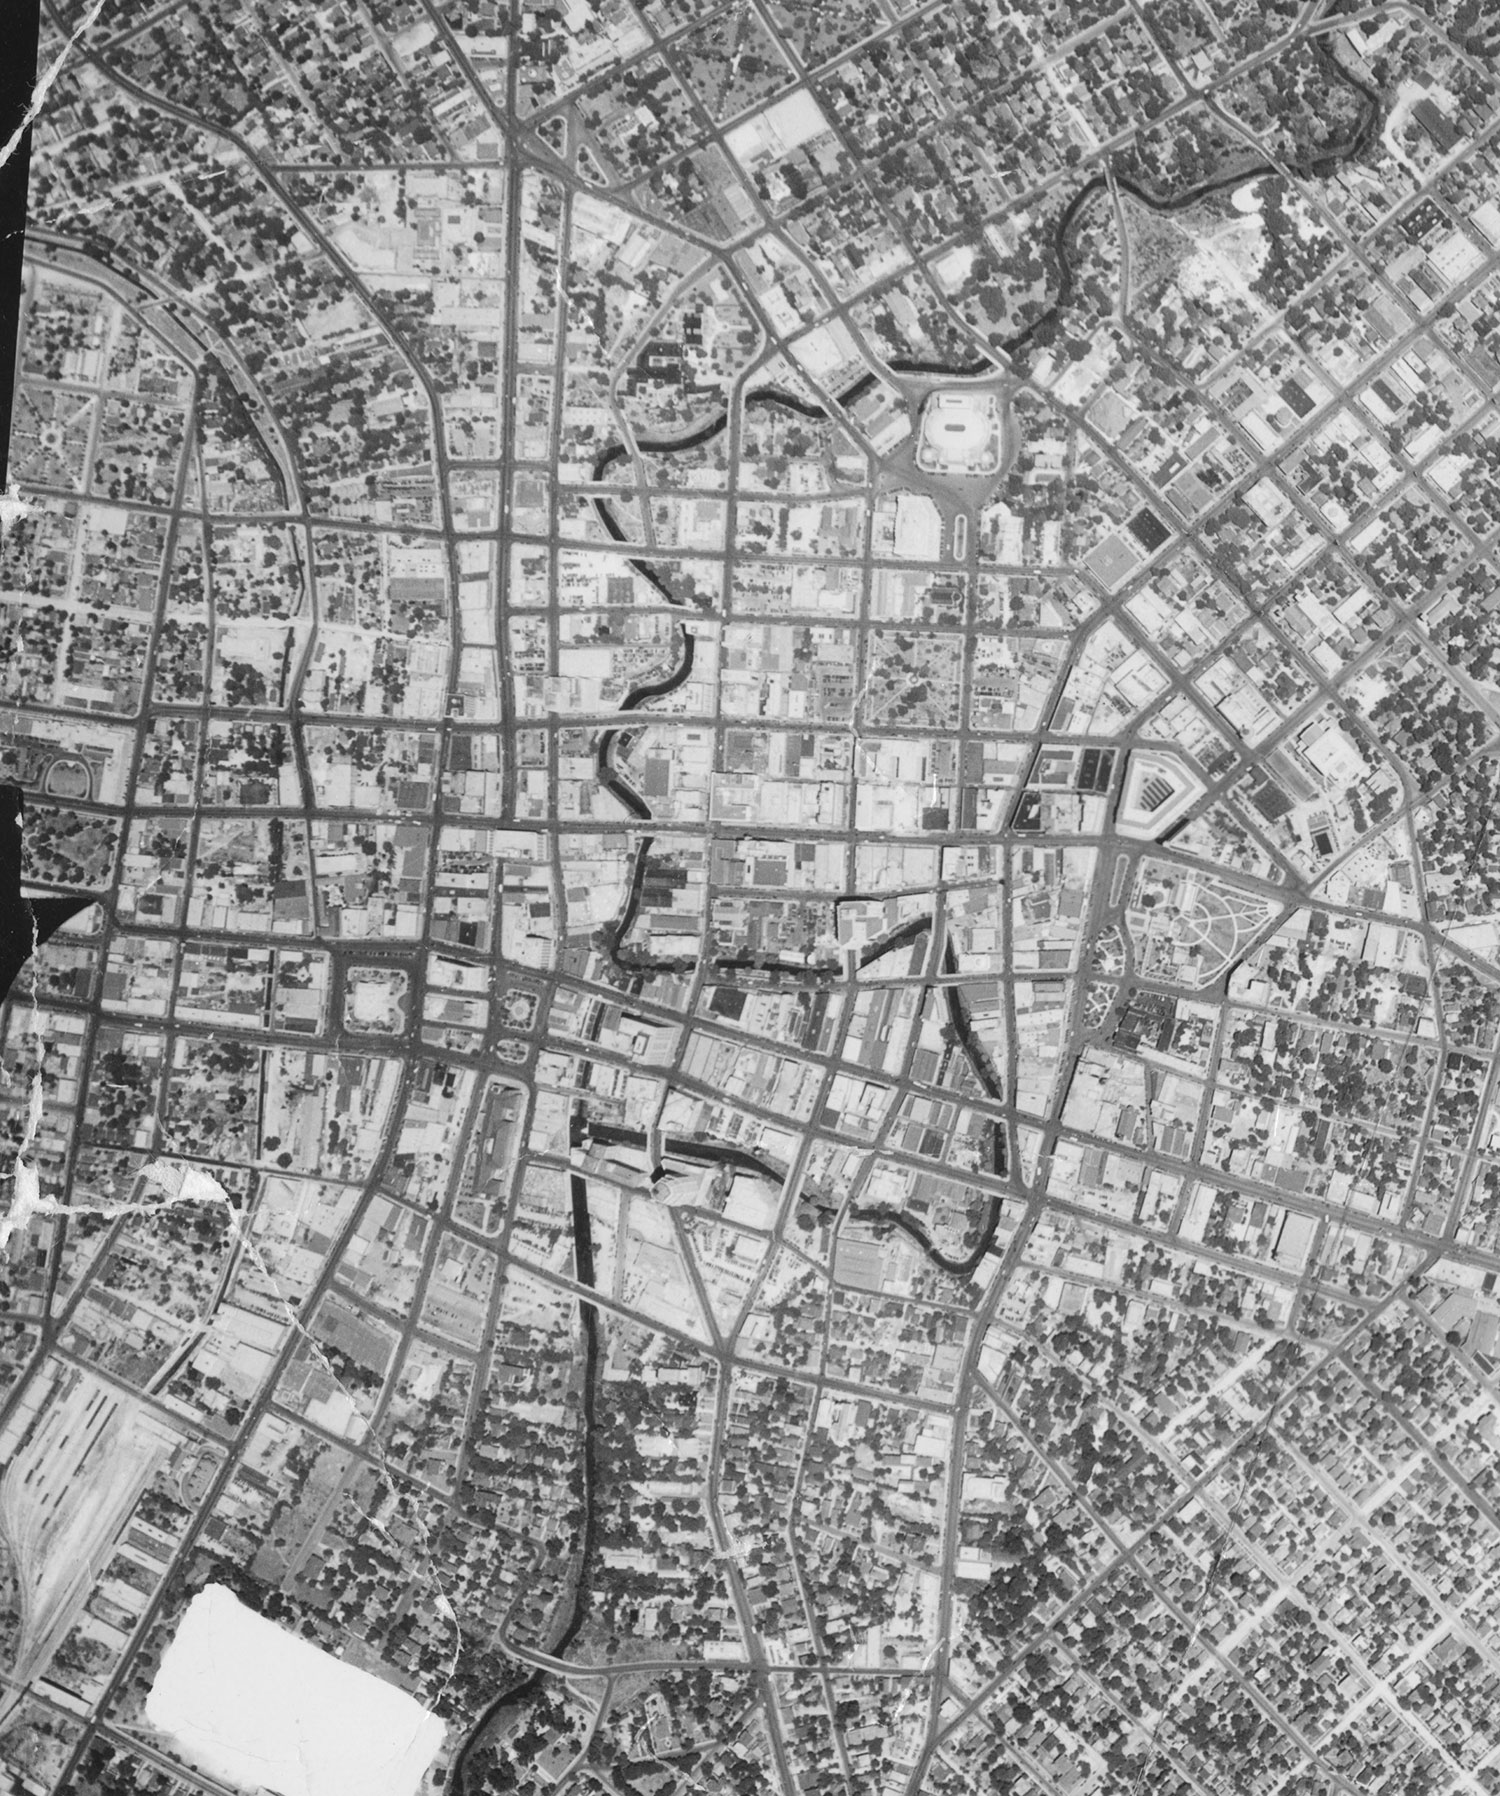 A large preview of the Downtown San Antonio, 1938 image